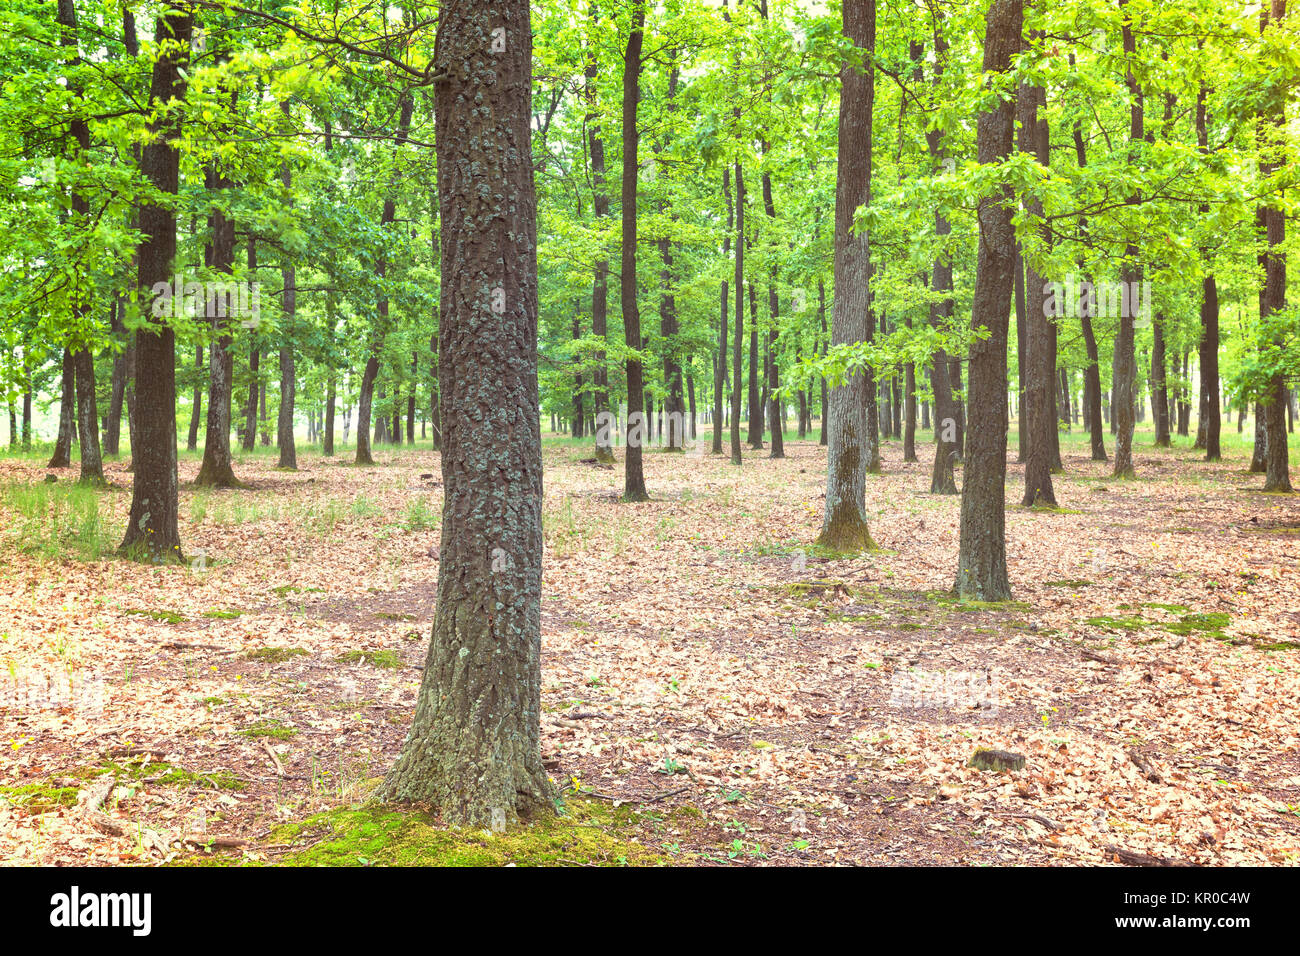 Green forest with oak trees - Stock Image